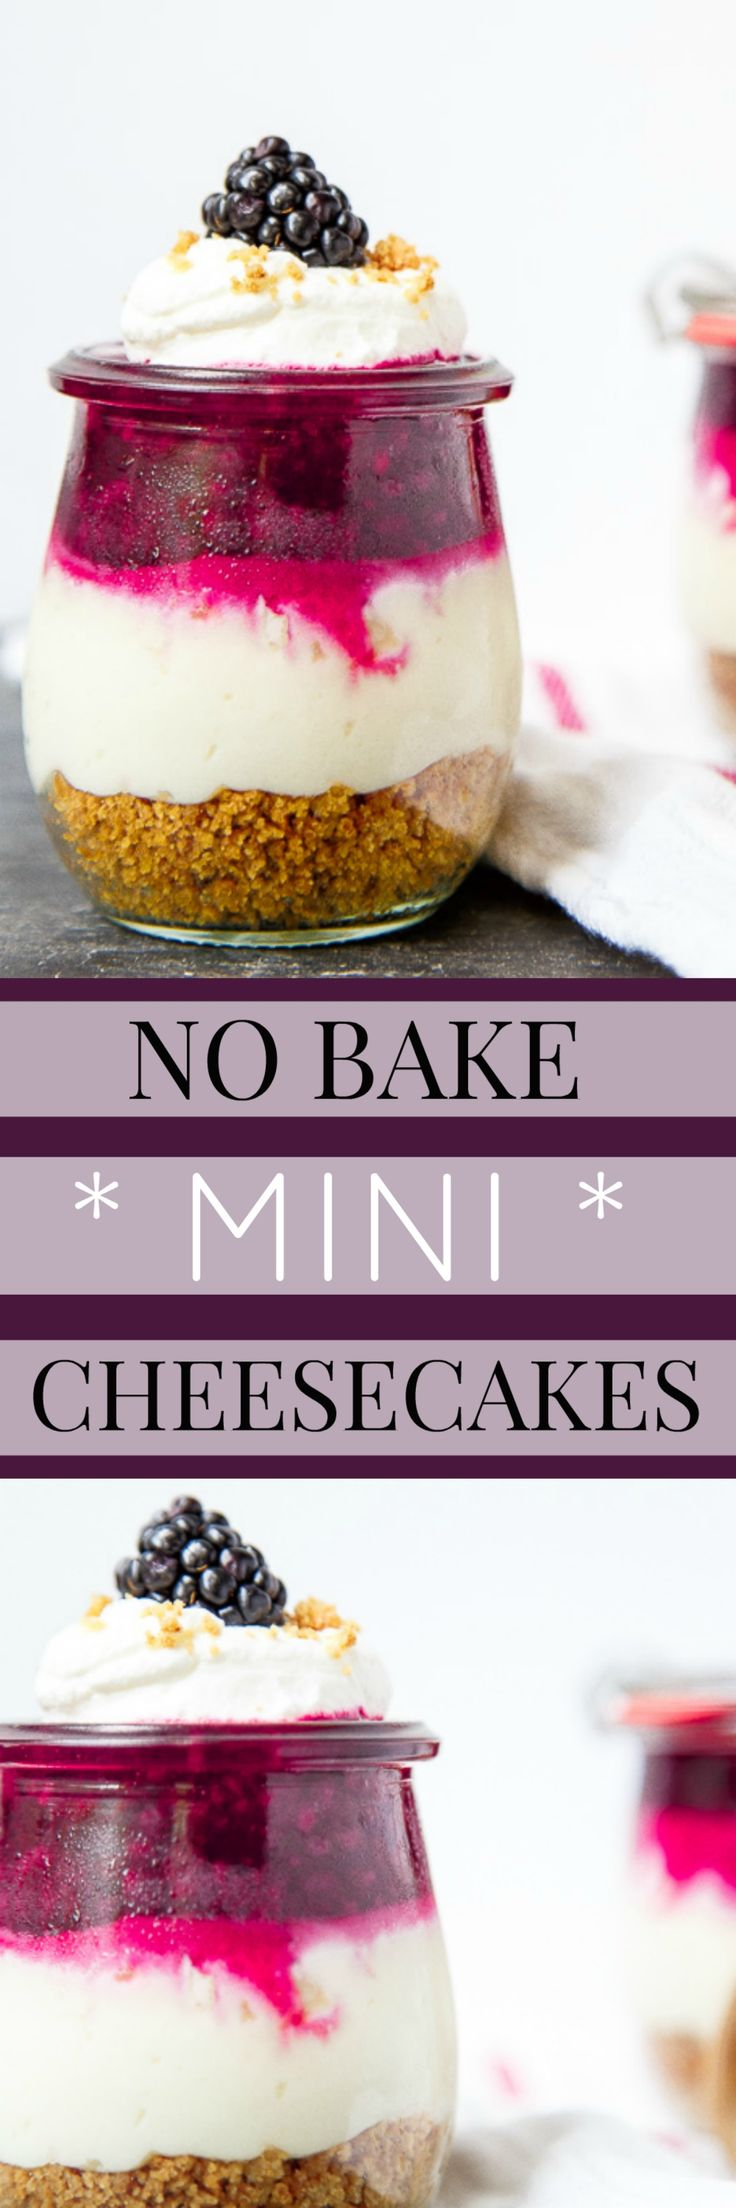 Small batch cheesecakes. Mini cheesecakes made in mason jars for two. The cutest…